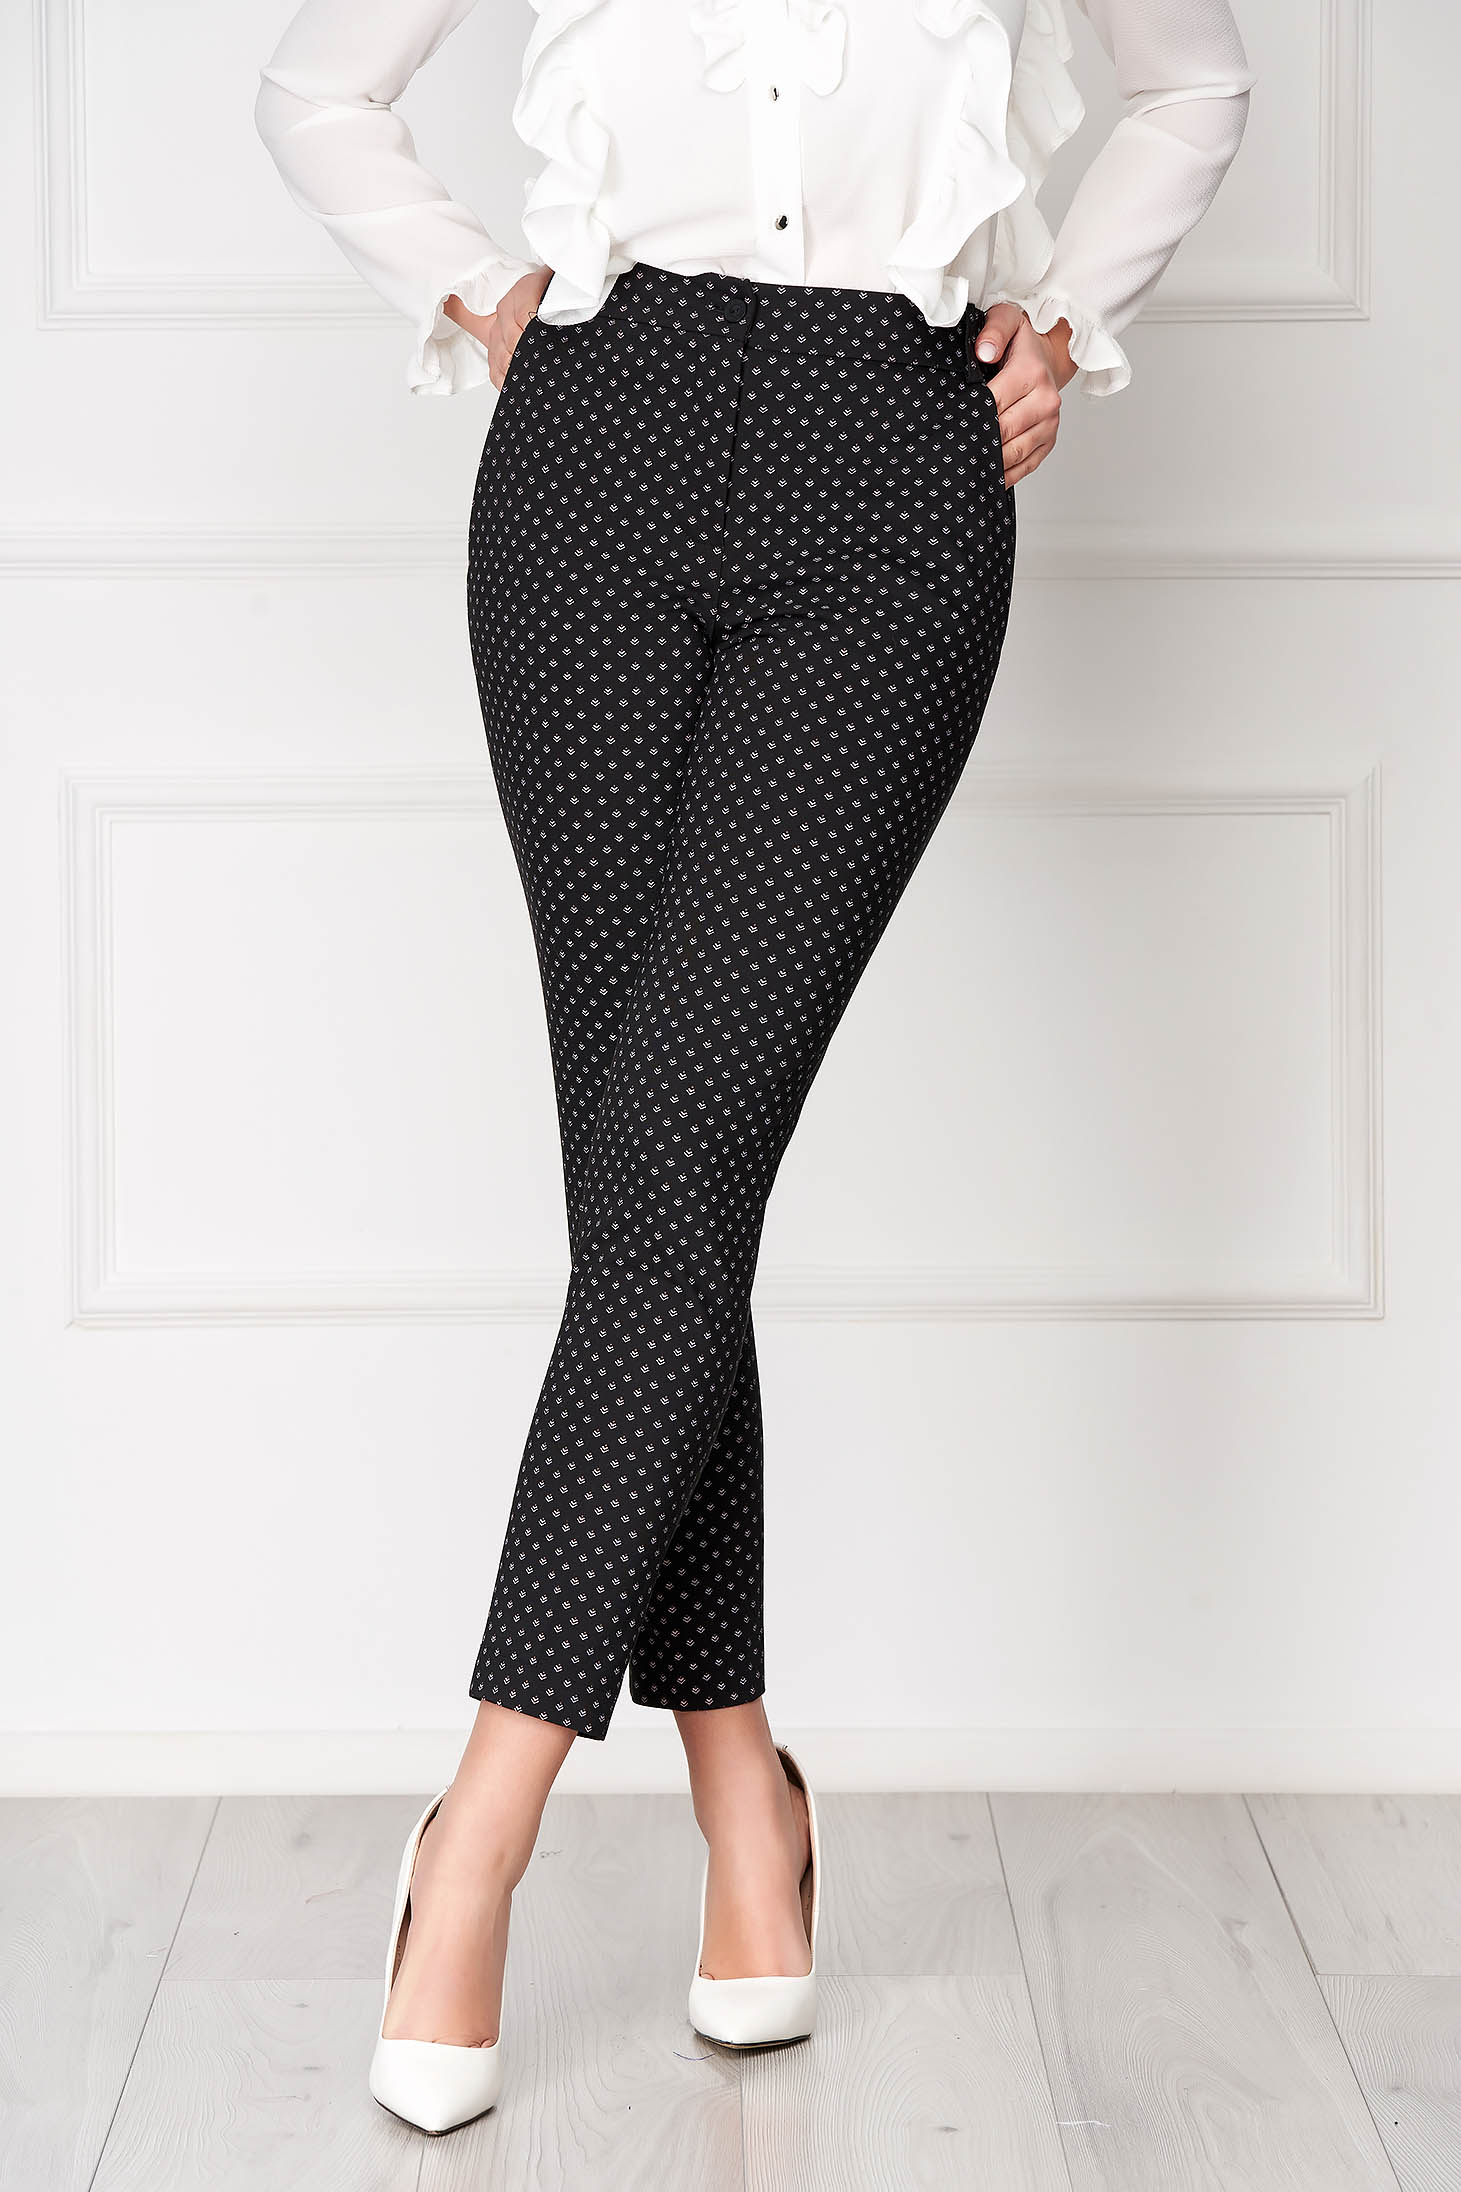 Black trousers elegant conical medium waist cloth thin fabric with front pockets with graphic details